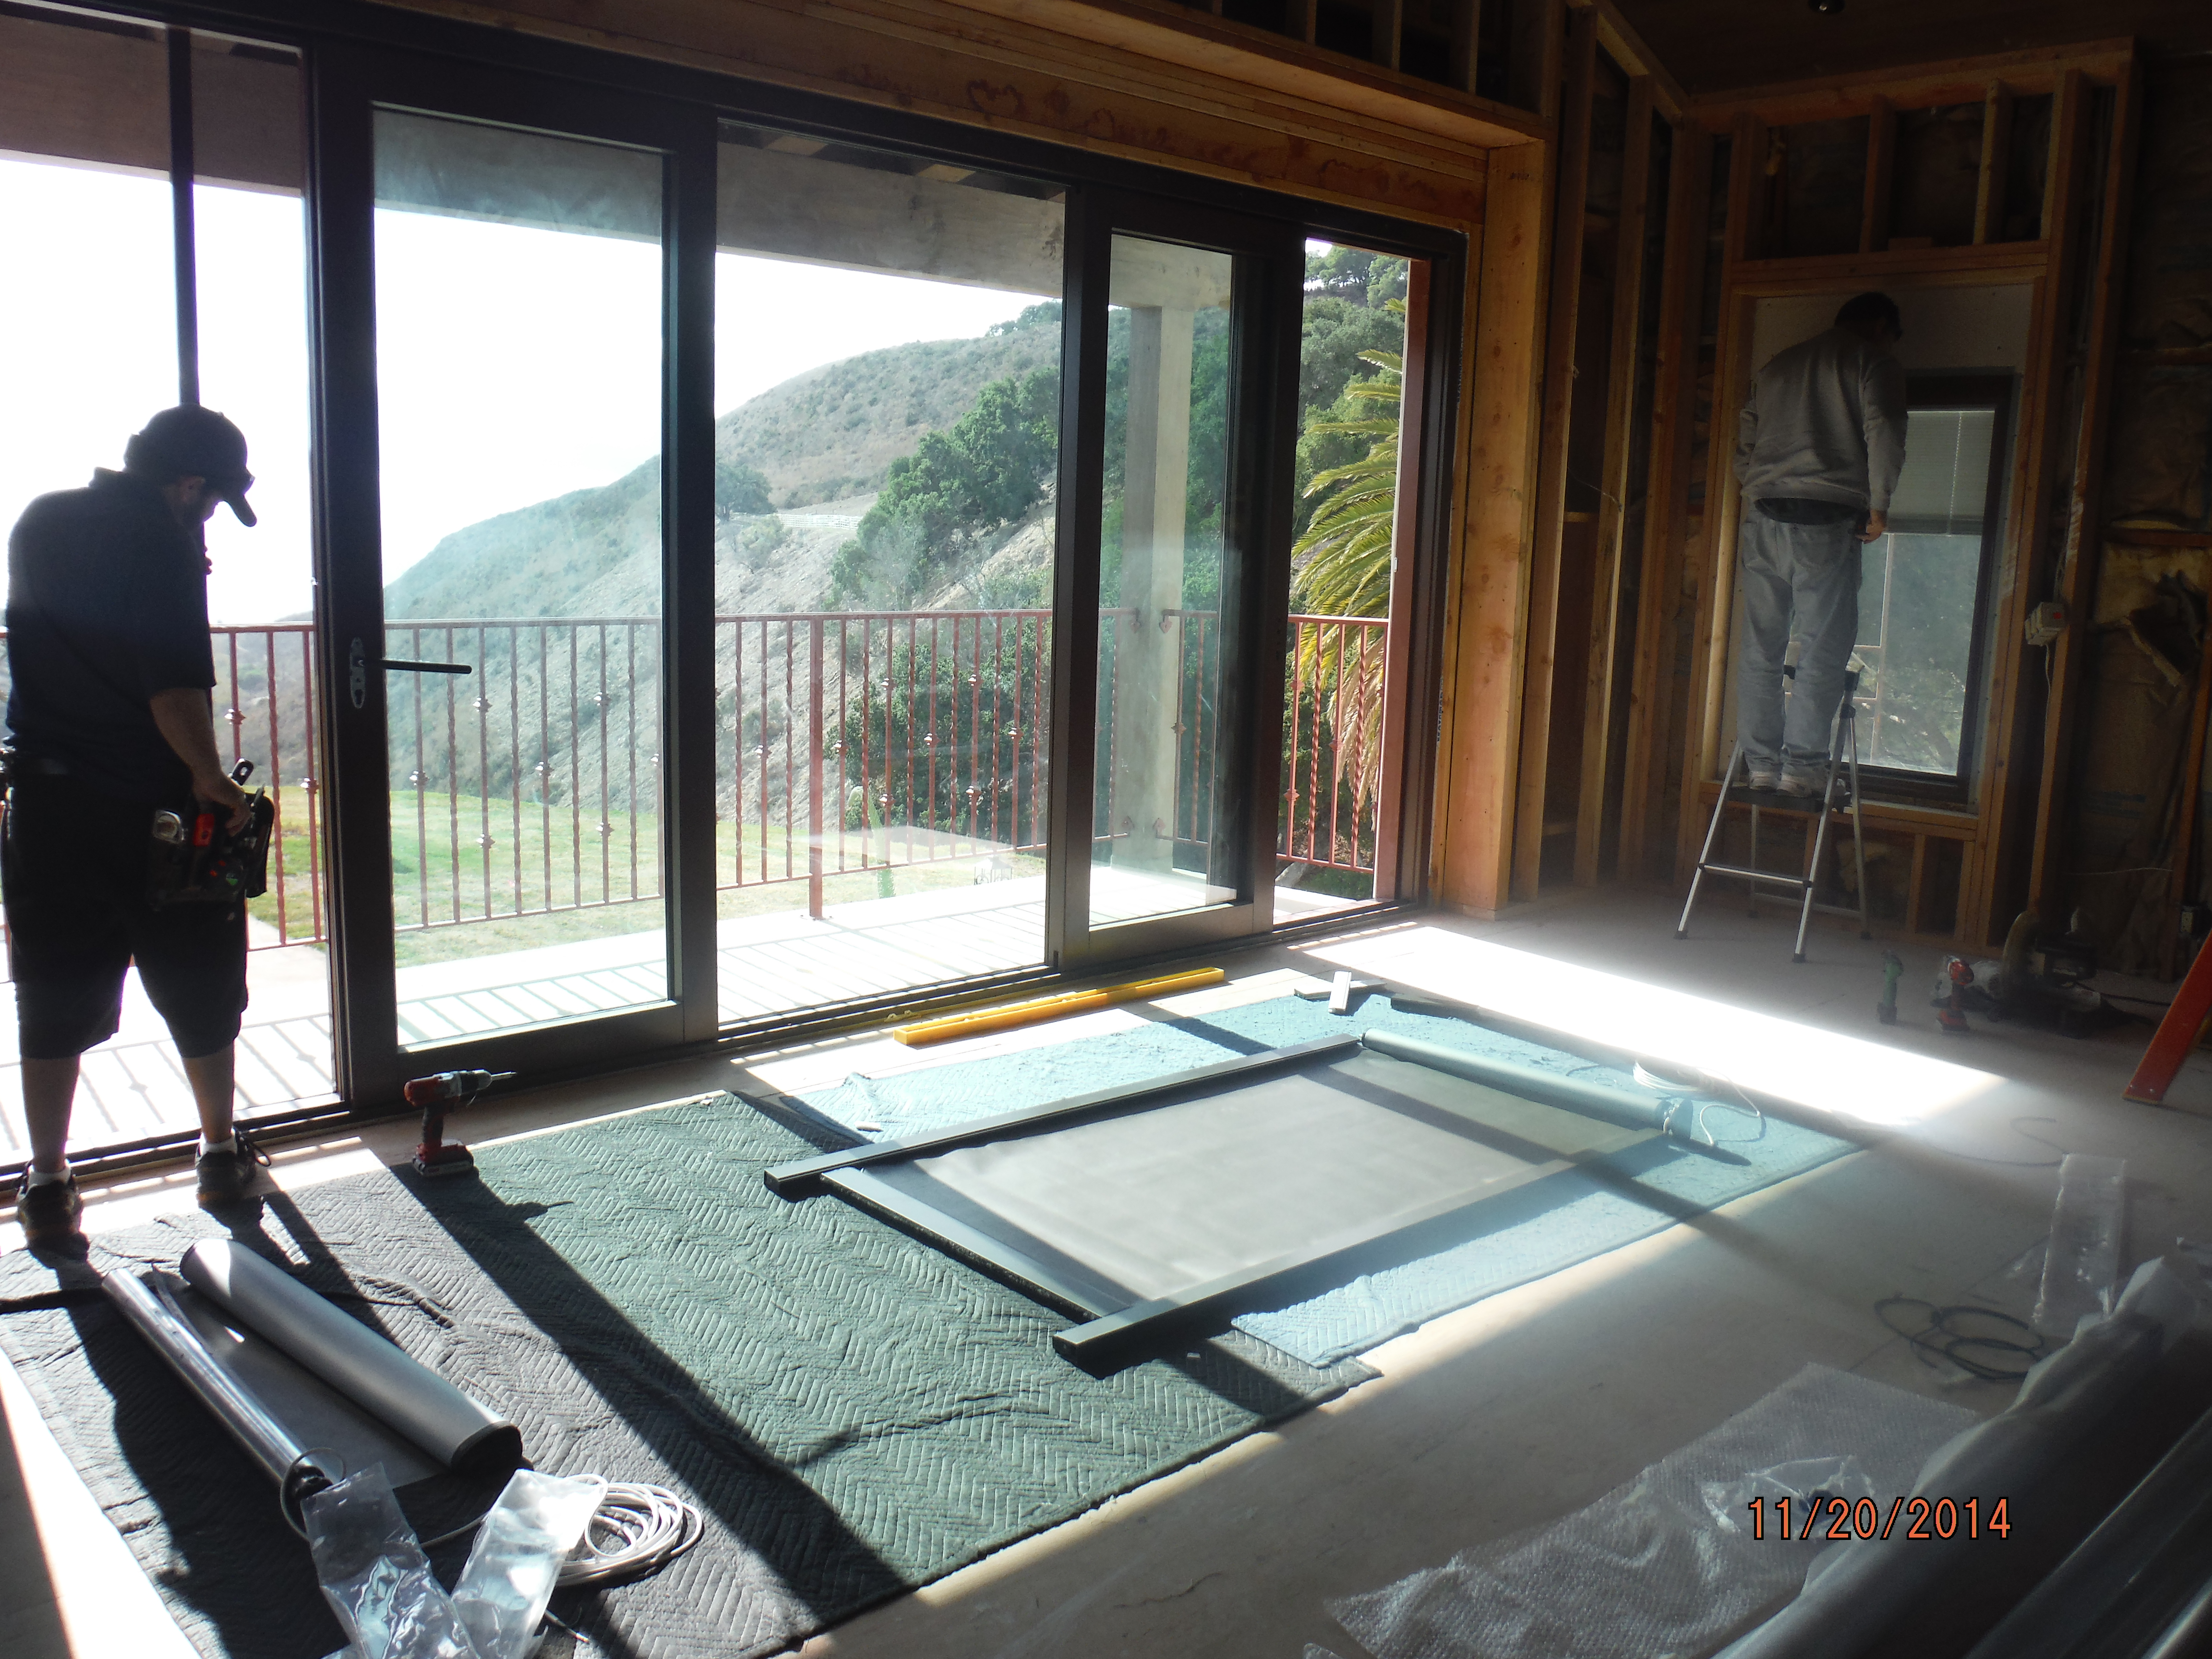 Installation Motorized Power Screens front view bi-folding doors